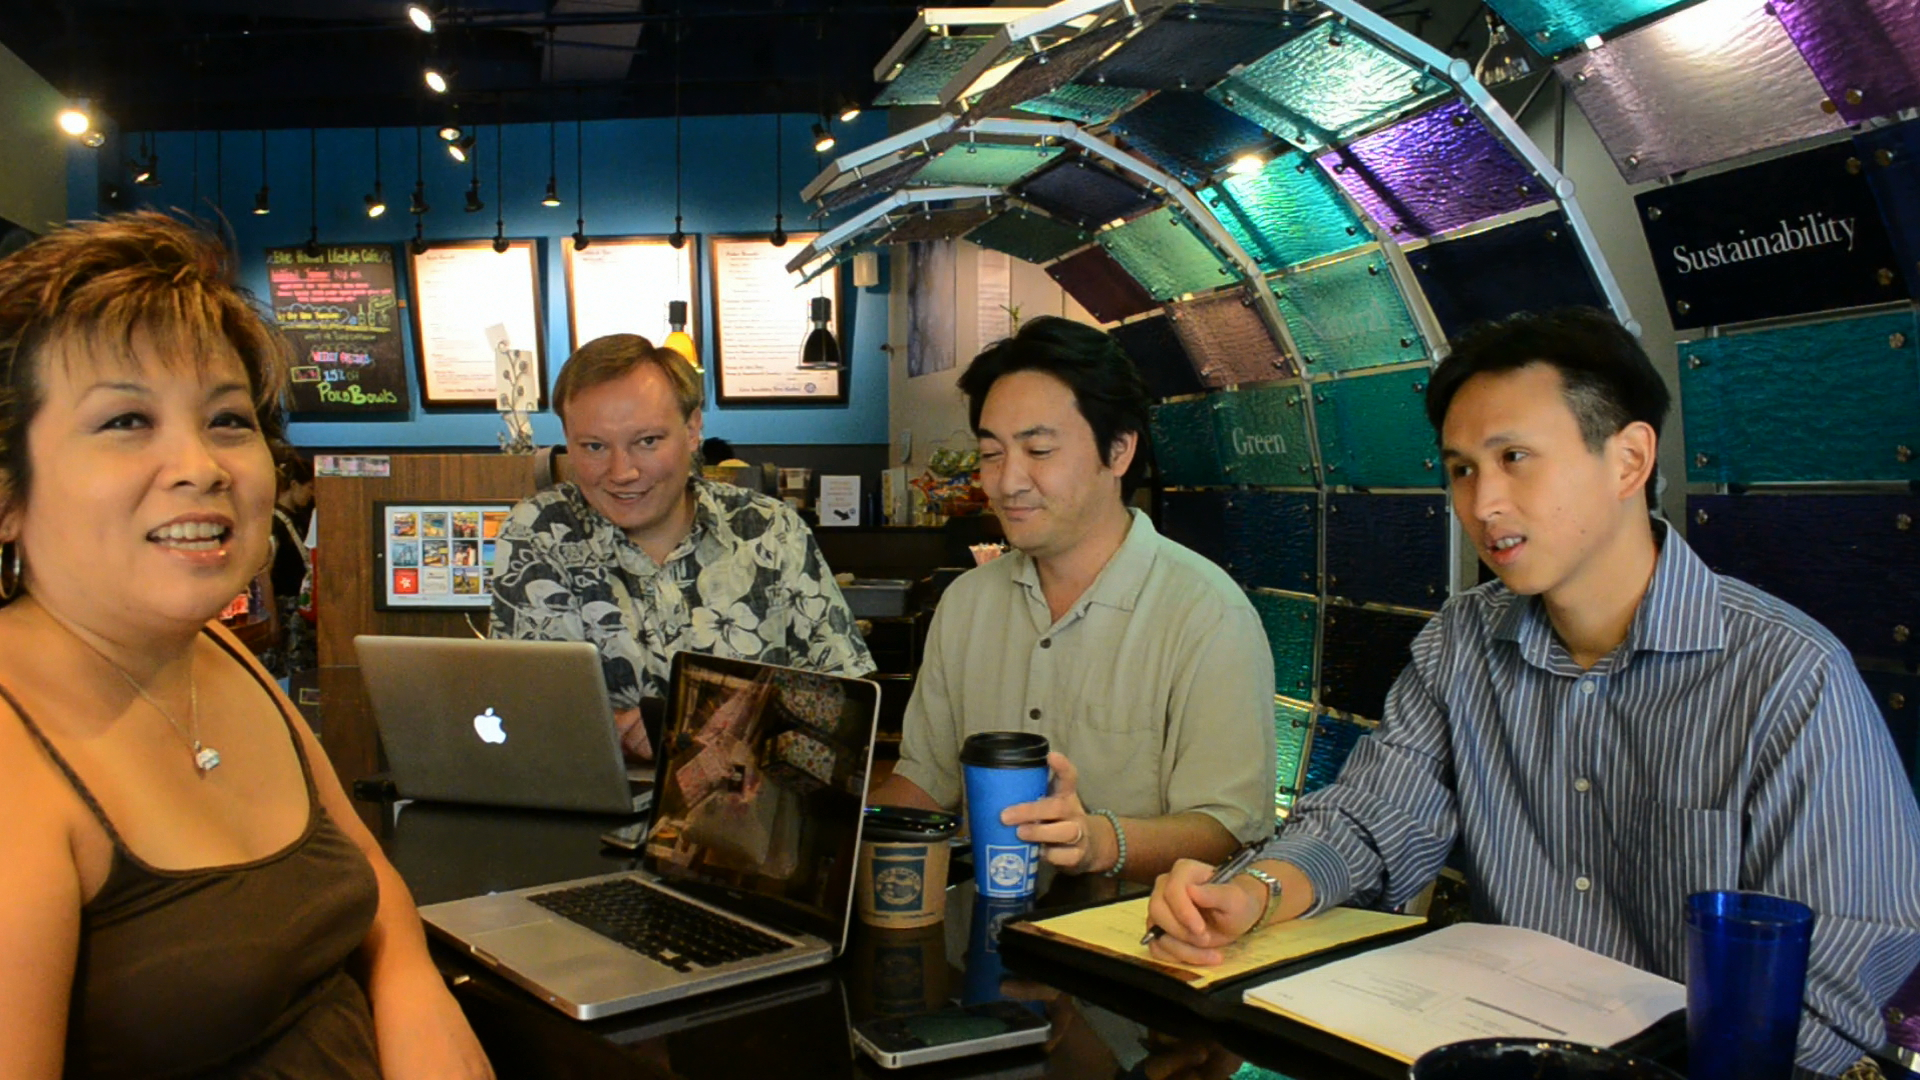 Hawaii: IRL @melissa808 Visits With @s4xton @ricknakama and @rkhewesq To Talk Cofficing @bluehilifestyle